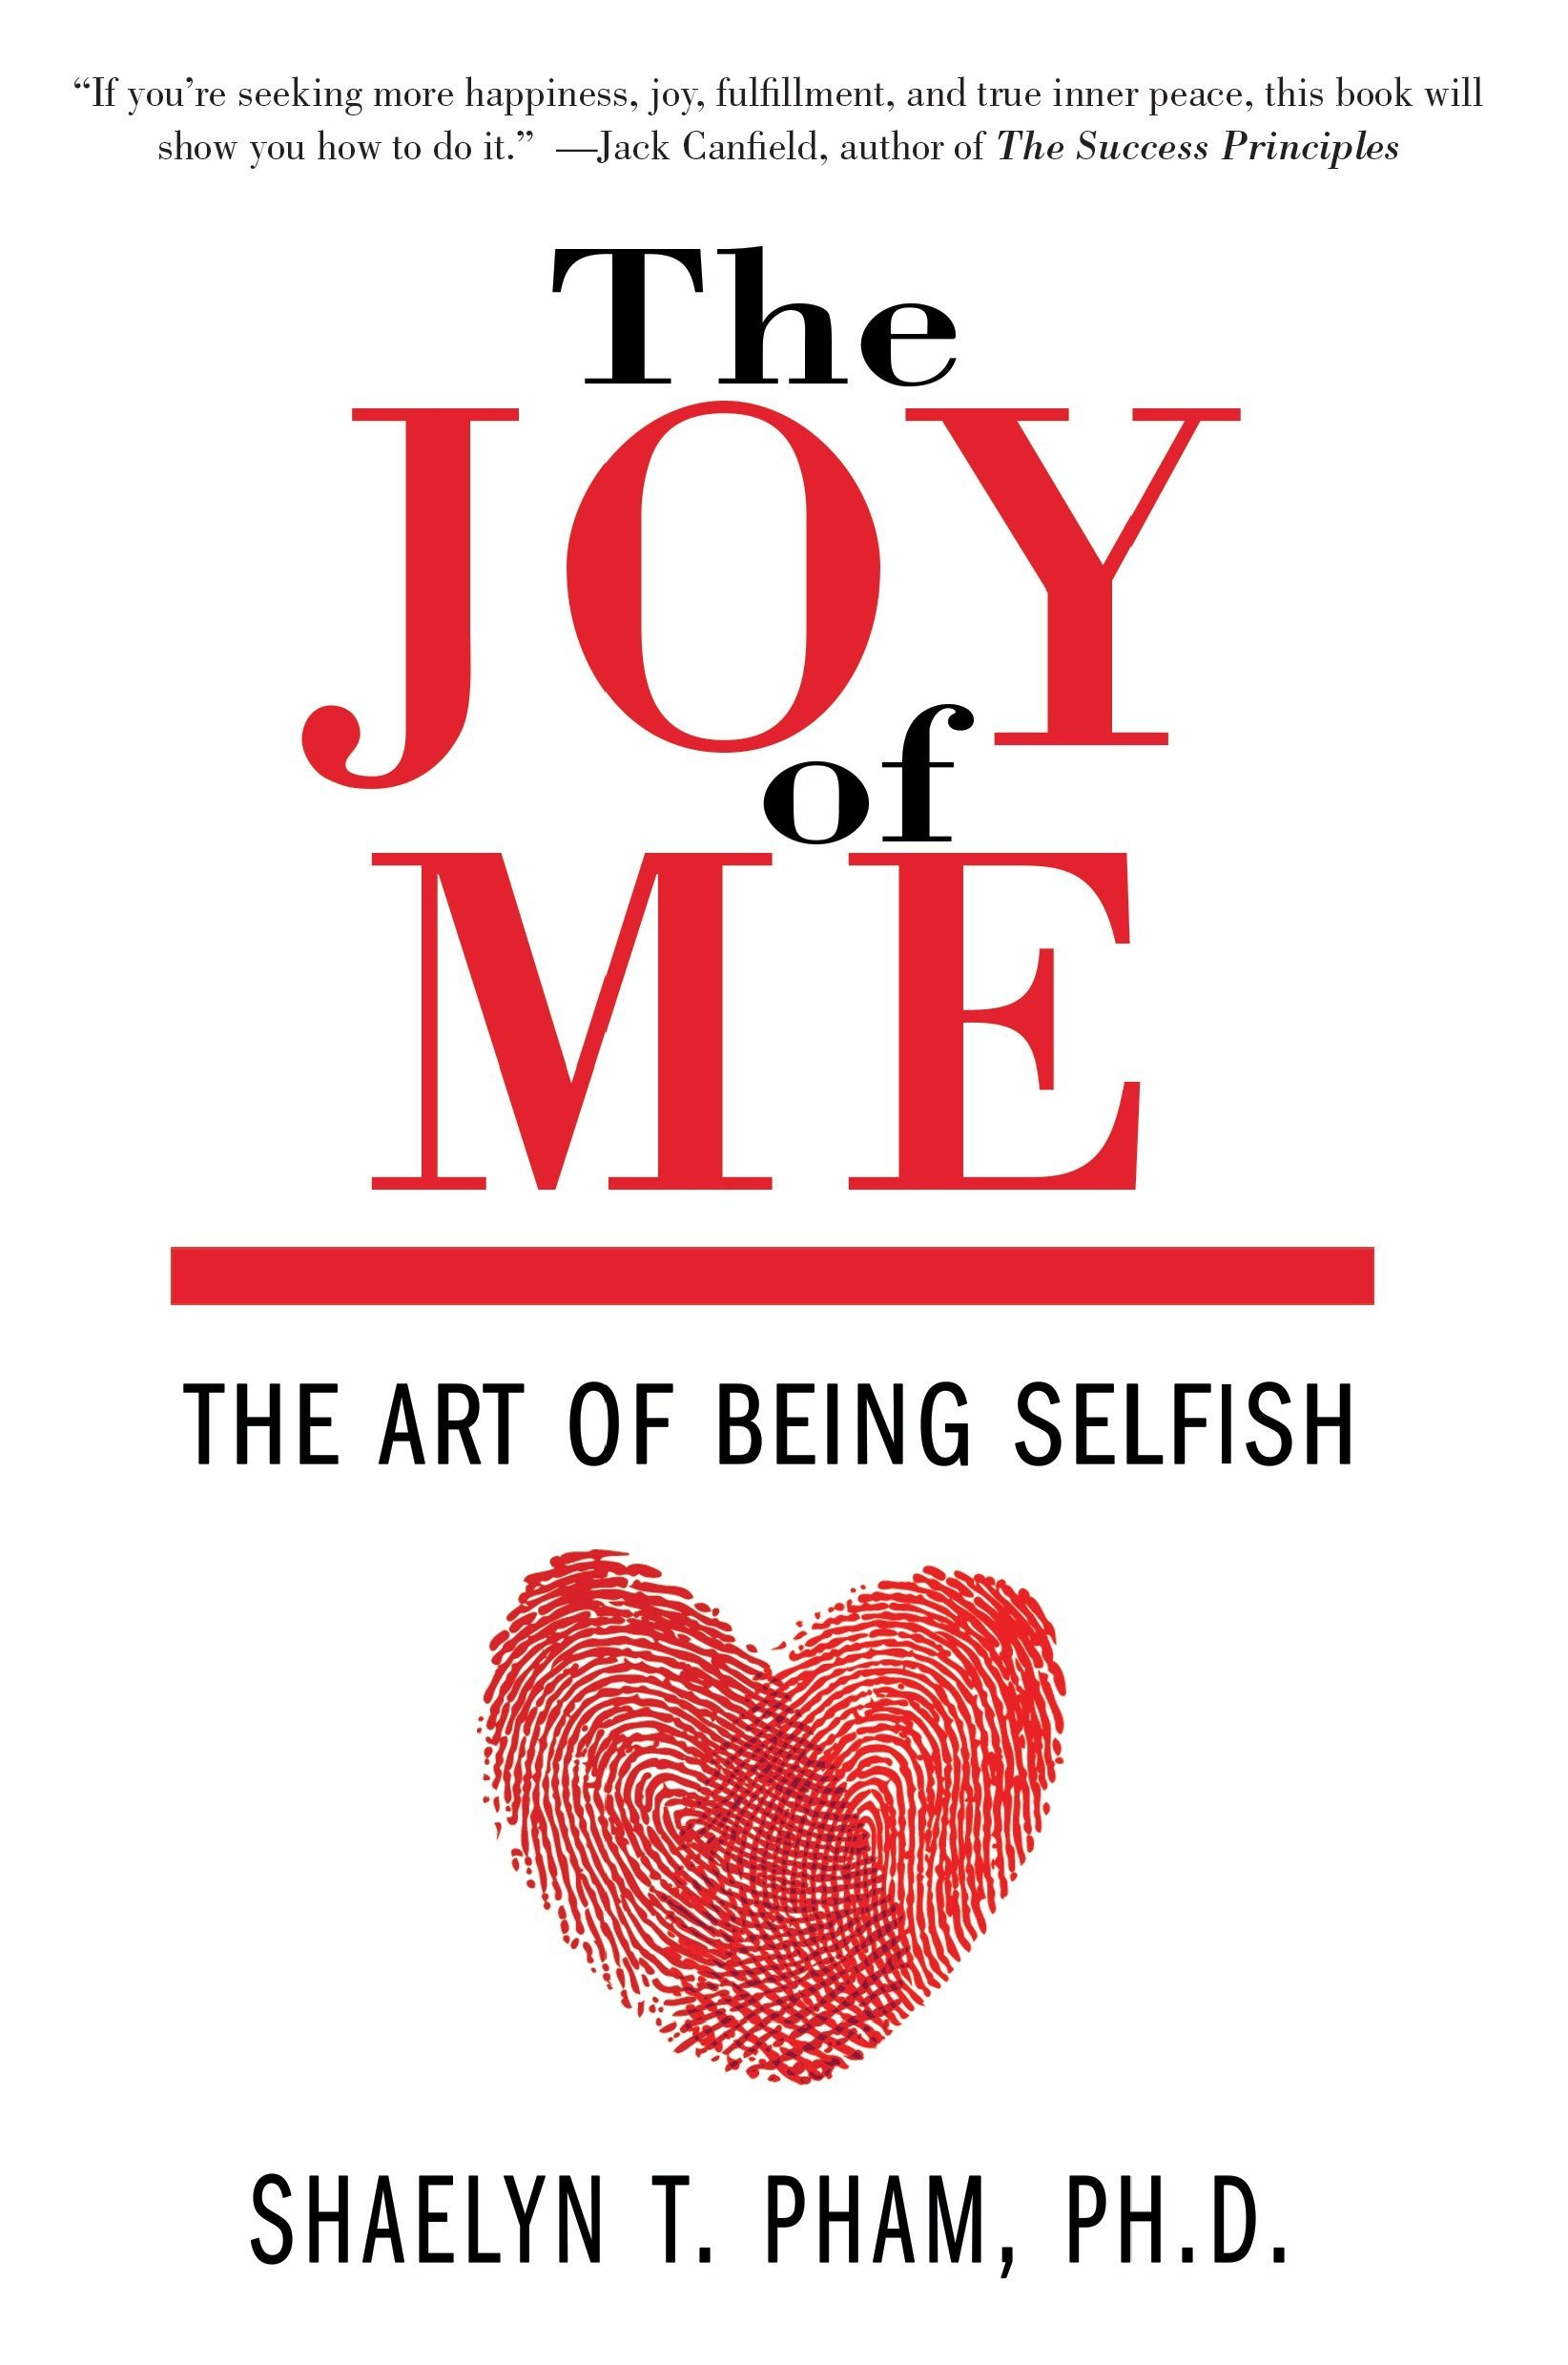 How to get rid of selfishness: advice of a psychologist